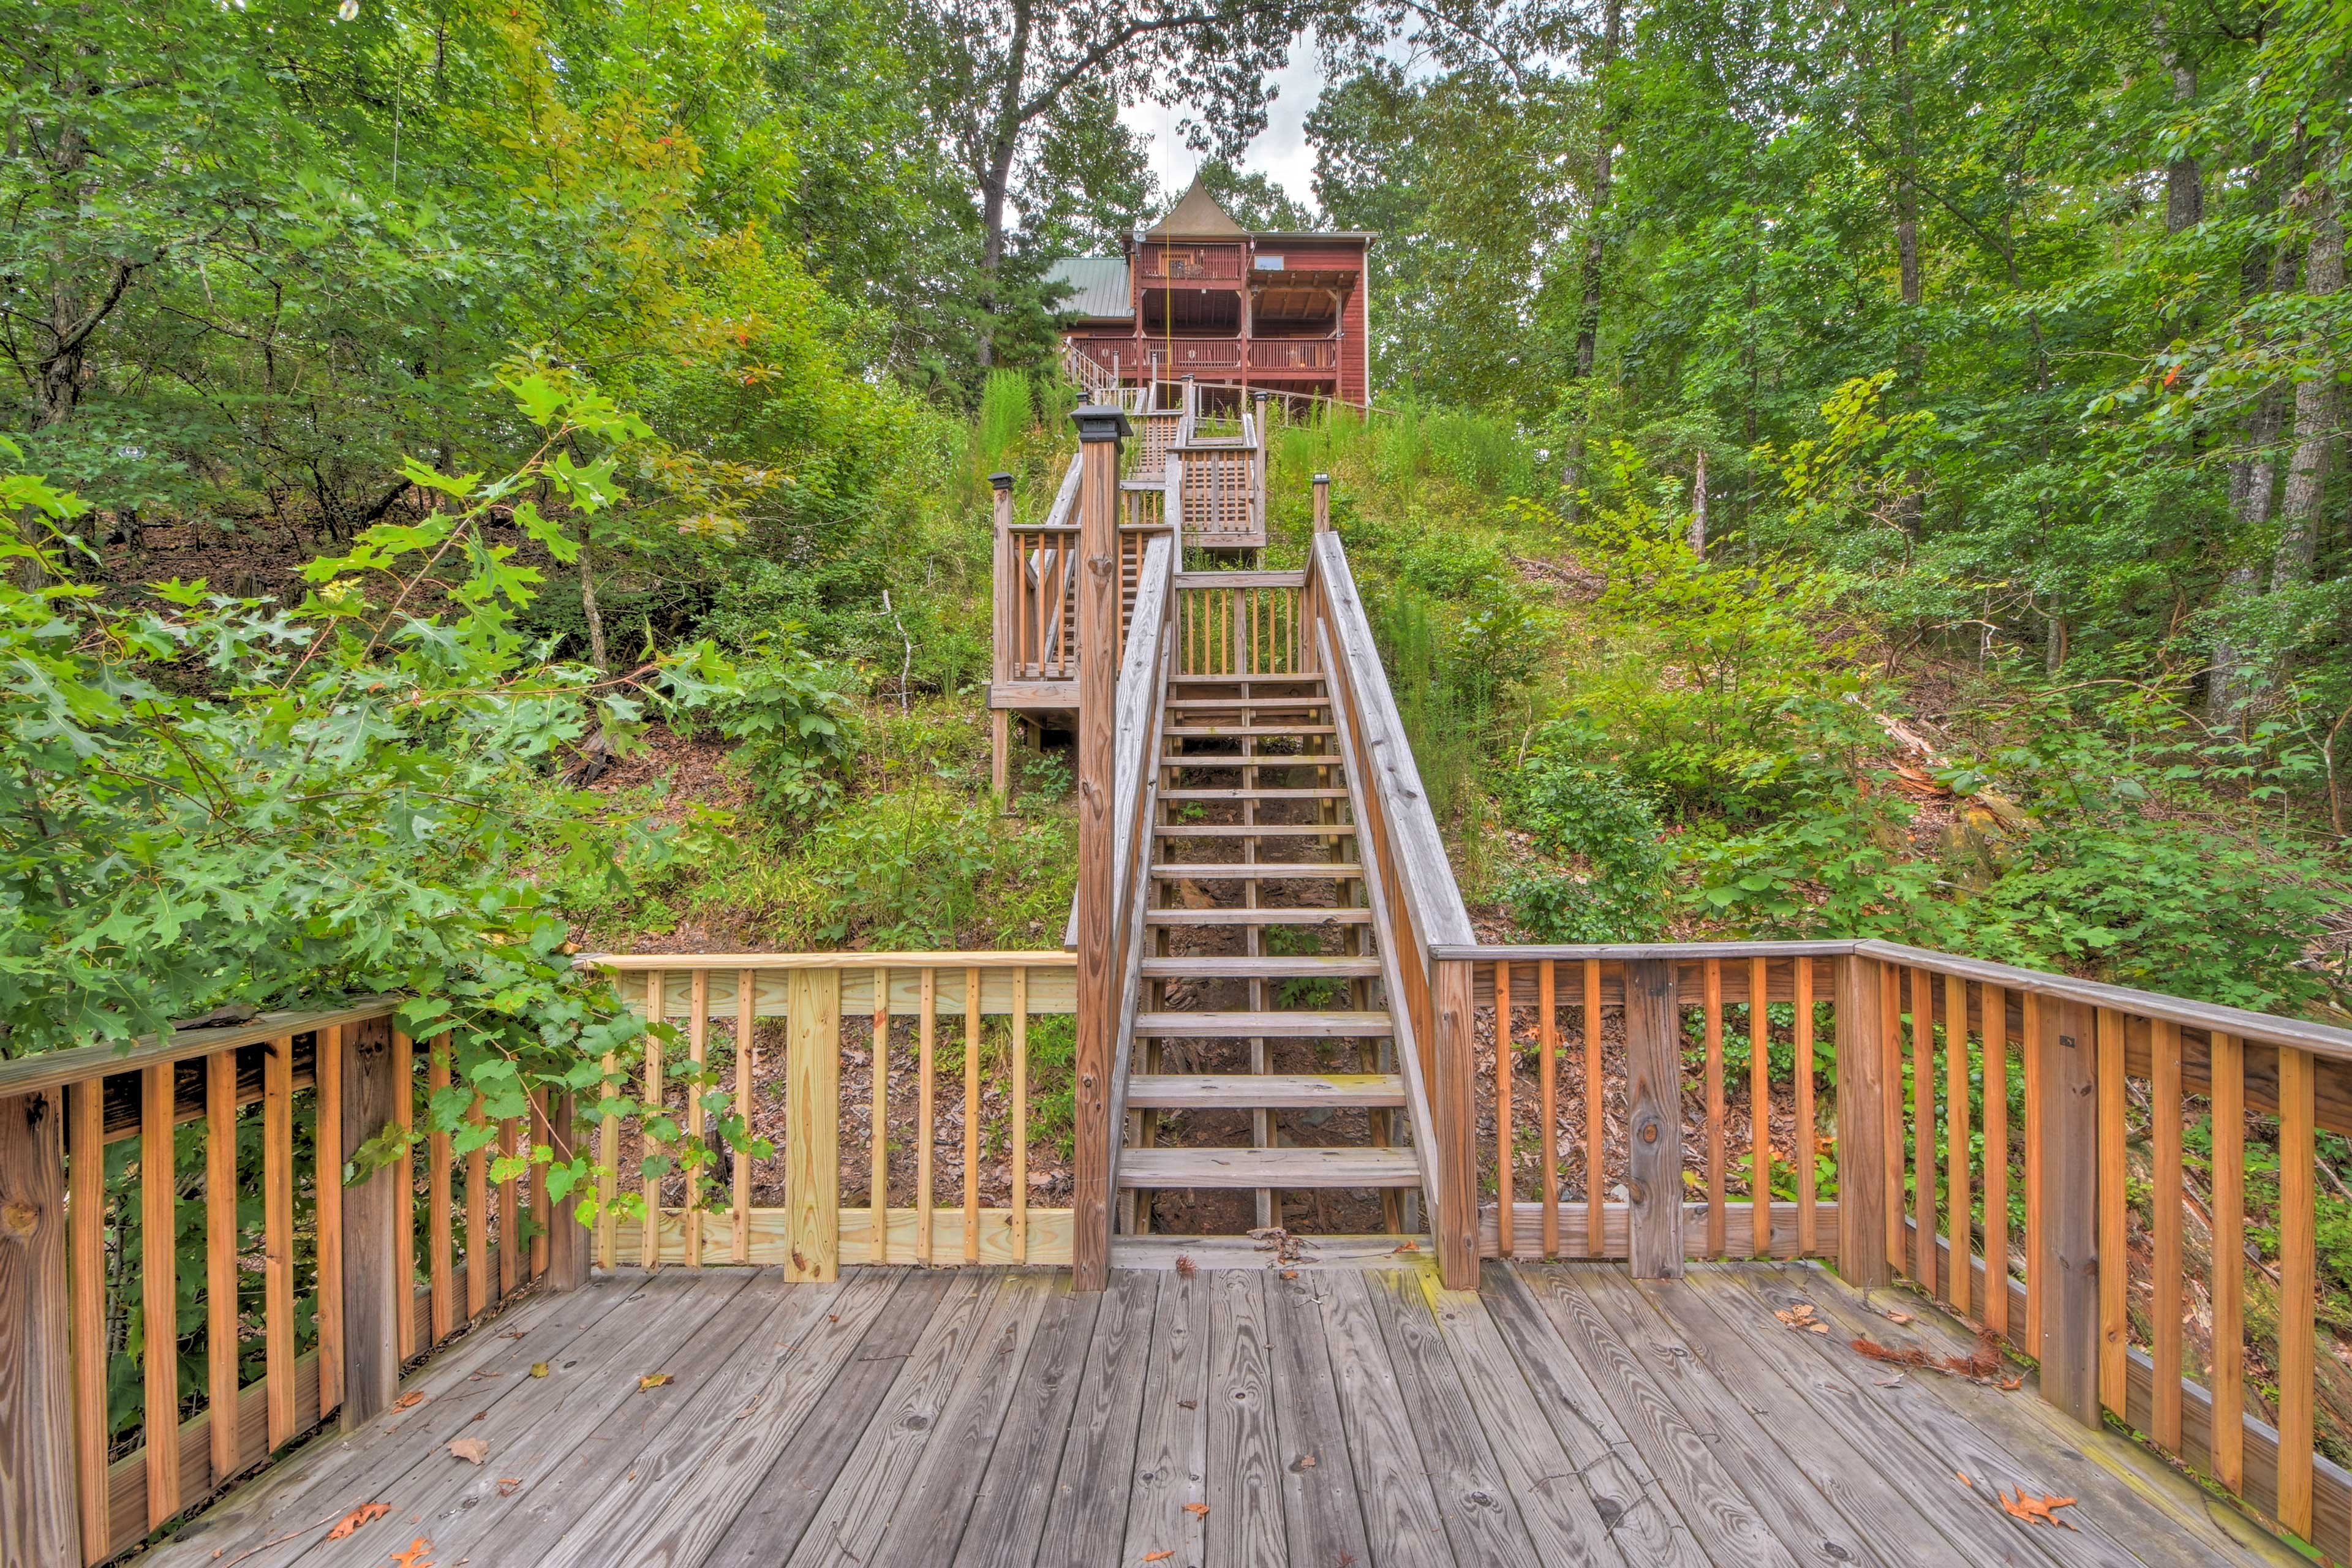 A walk down to the deck brings you into the thick of lush forest views.